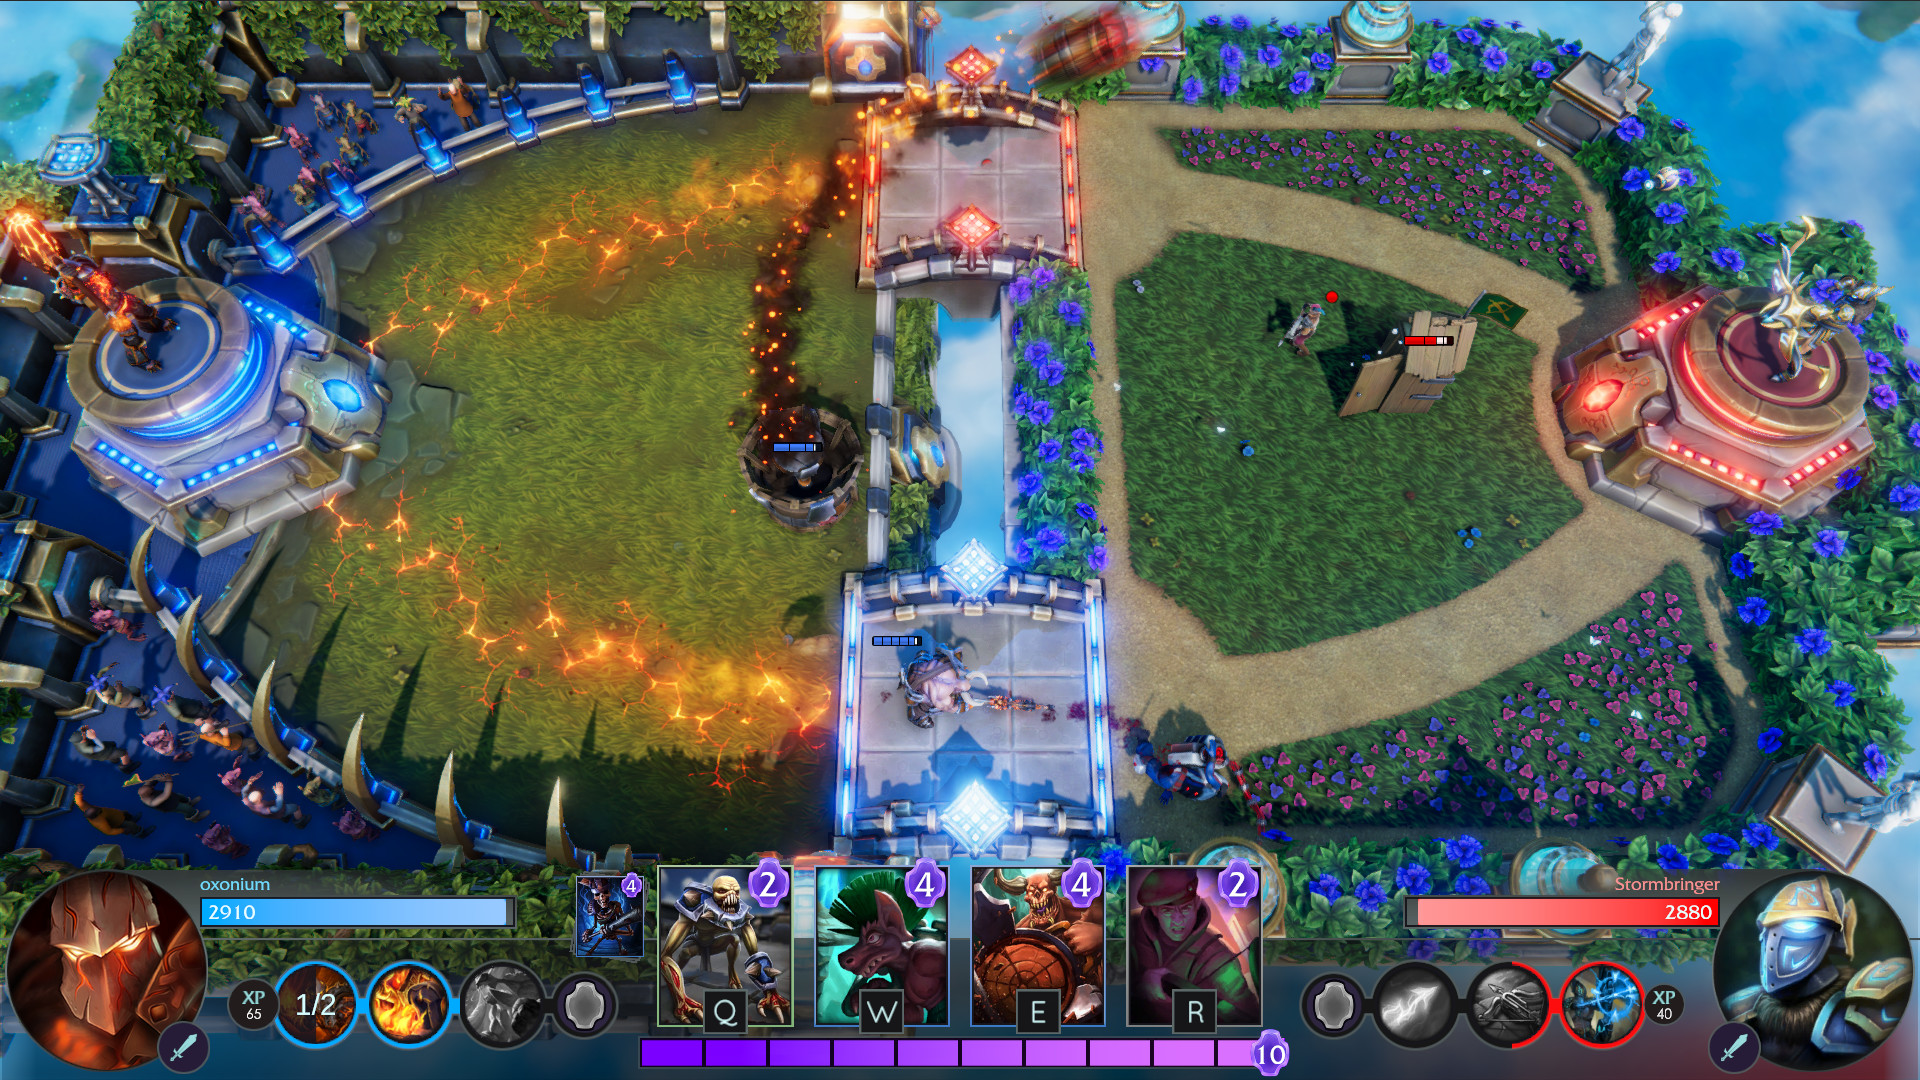 Minion Masters - Collect an army of Minions and fight with